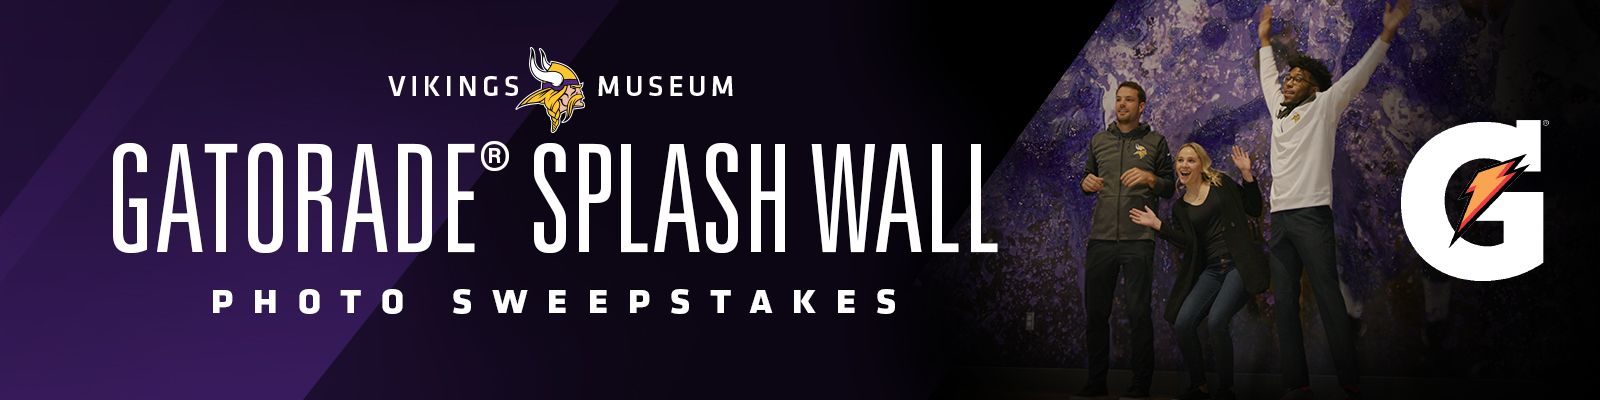 SplashWall_Header